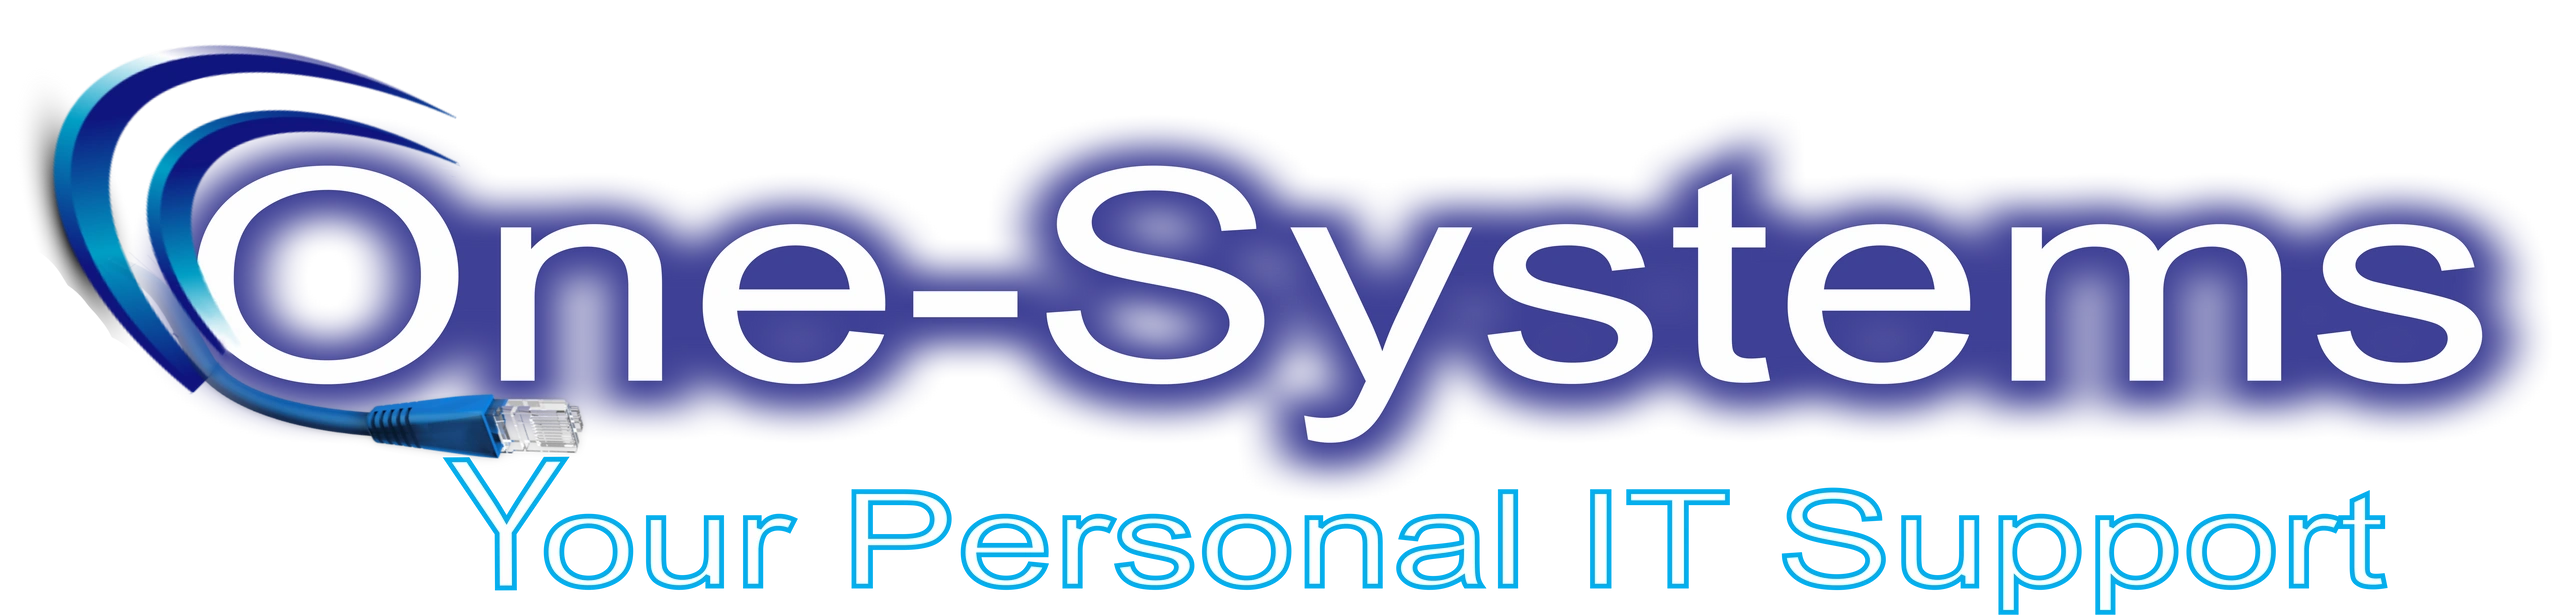 One-Systems Australia